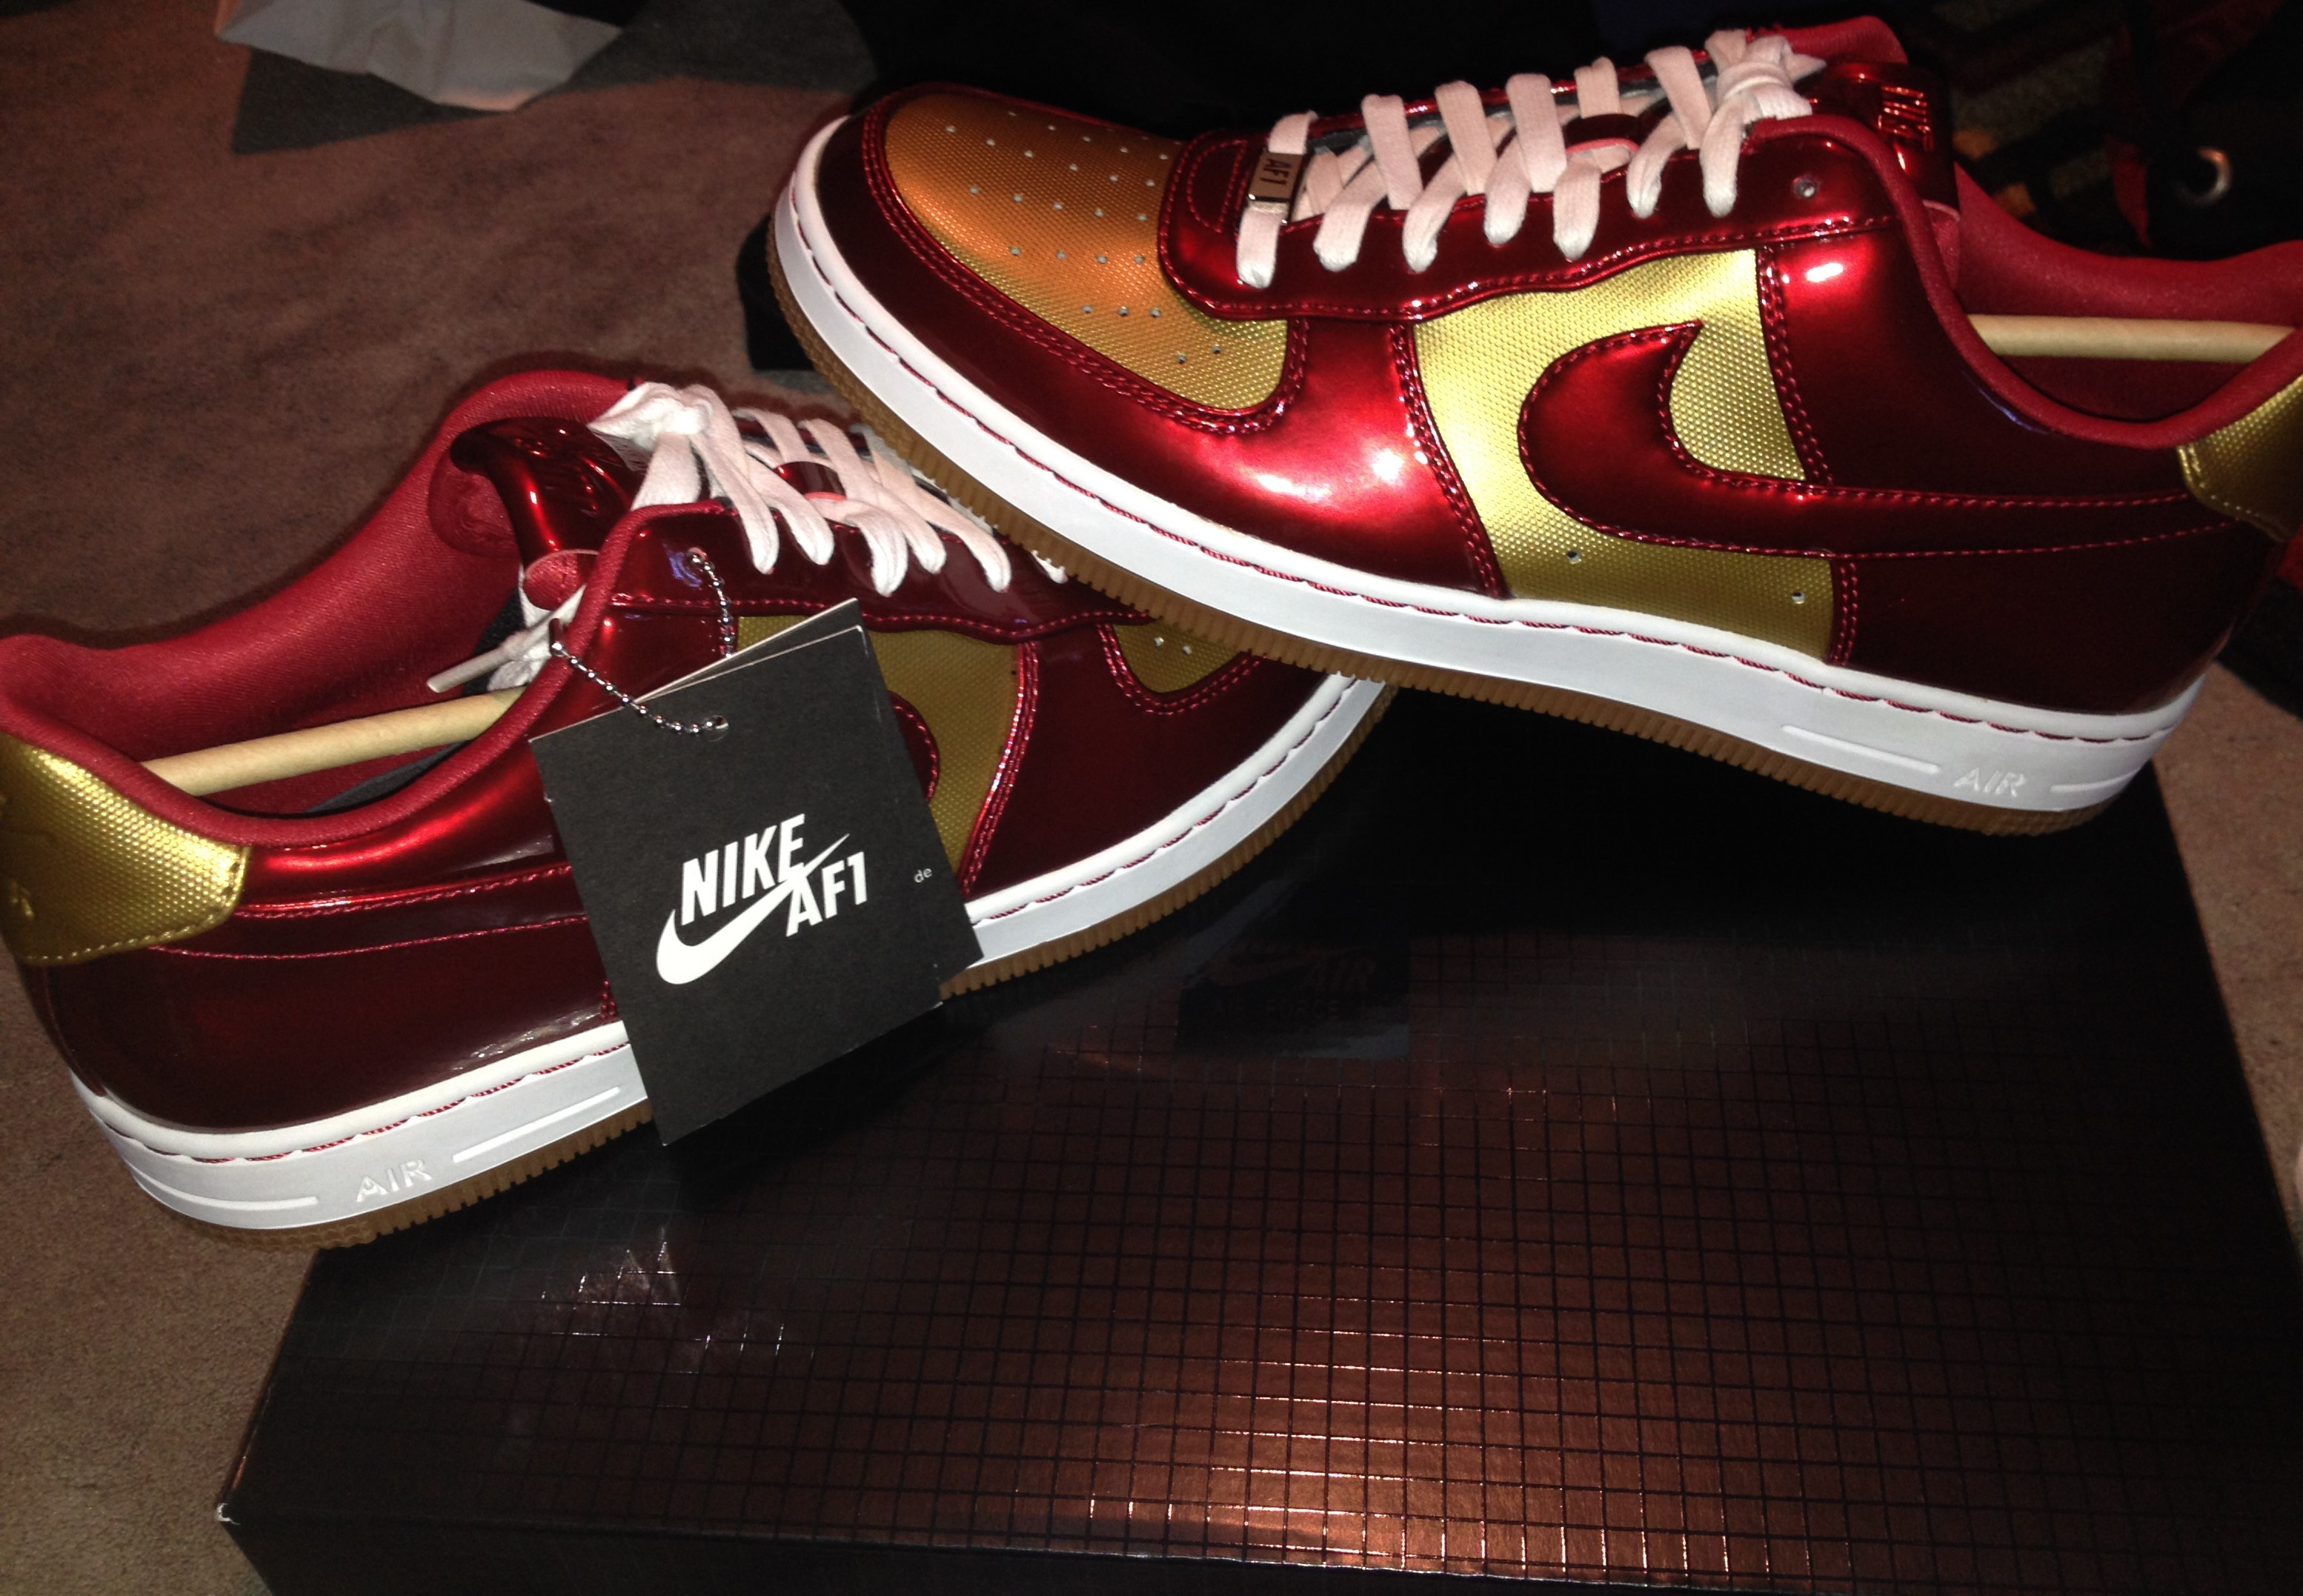 sale retailer f97e3 9c7ee air force 1 iron man air force 1 iron man ...